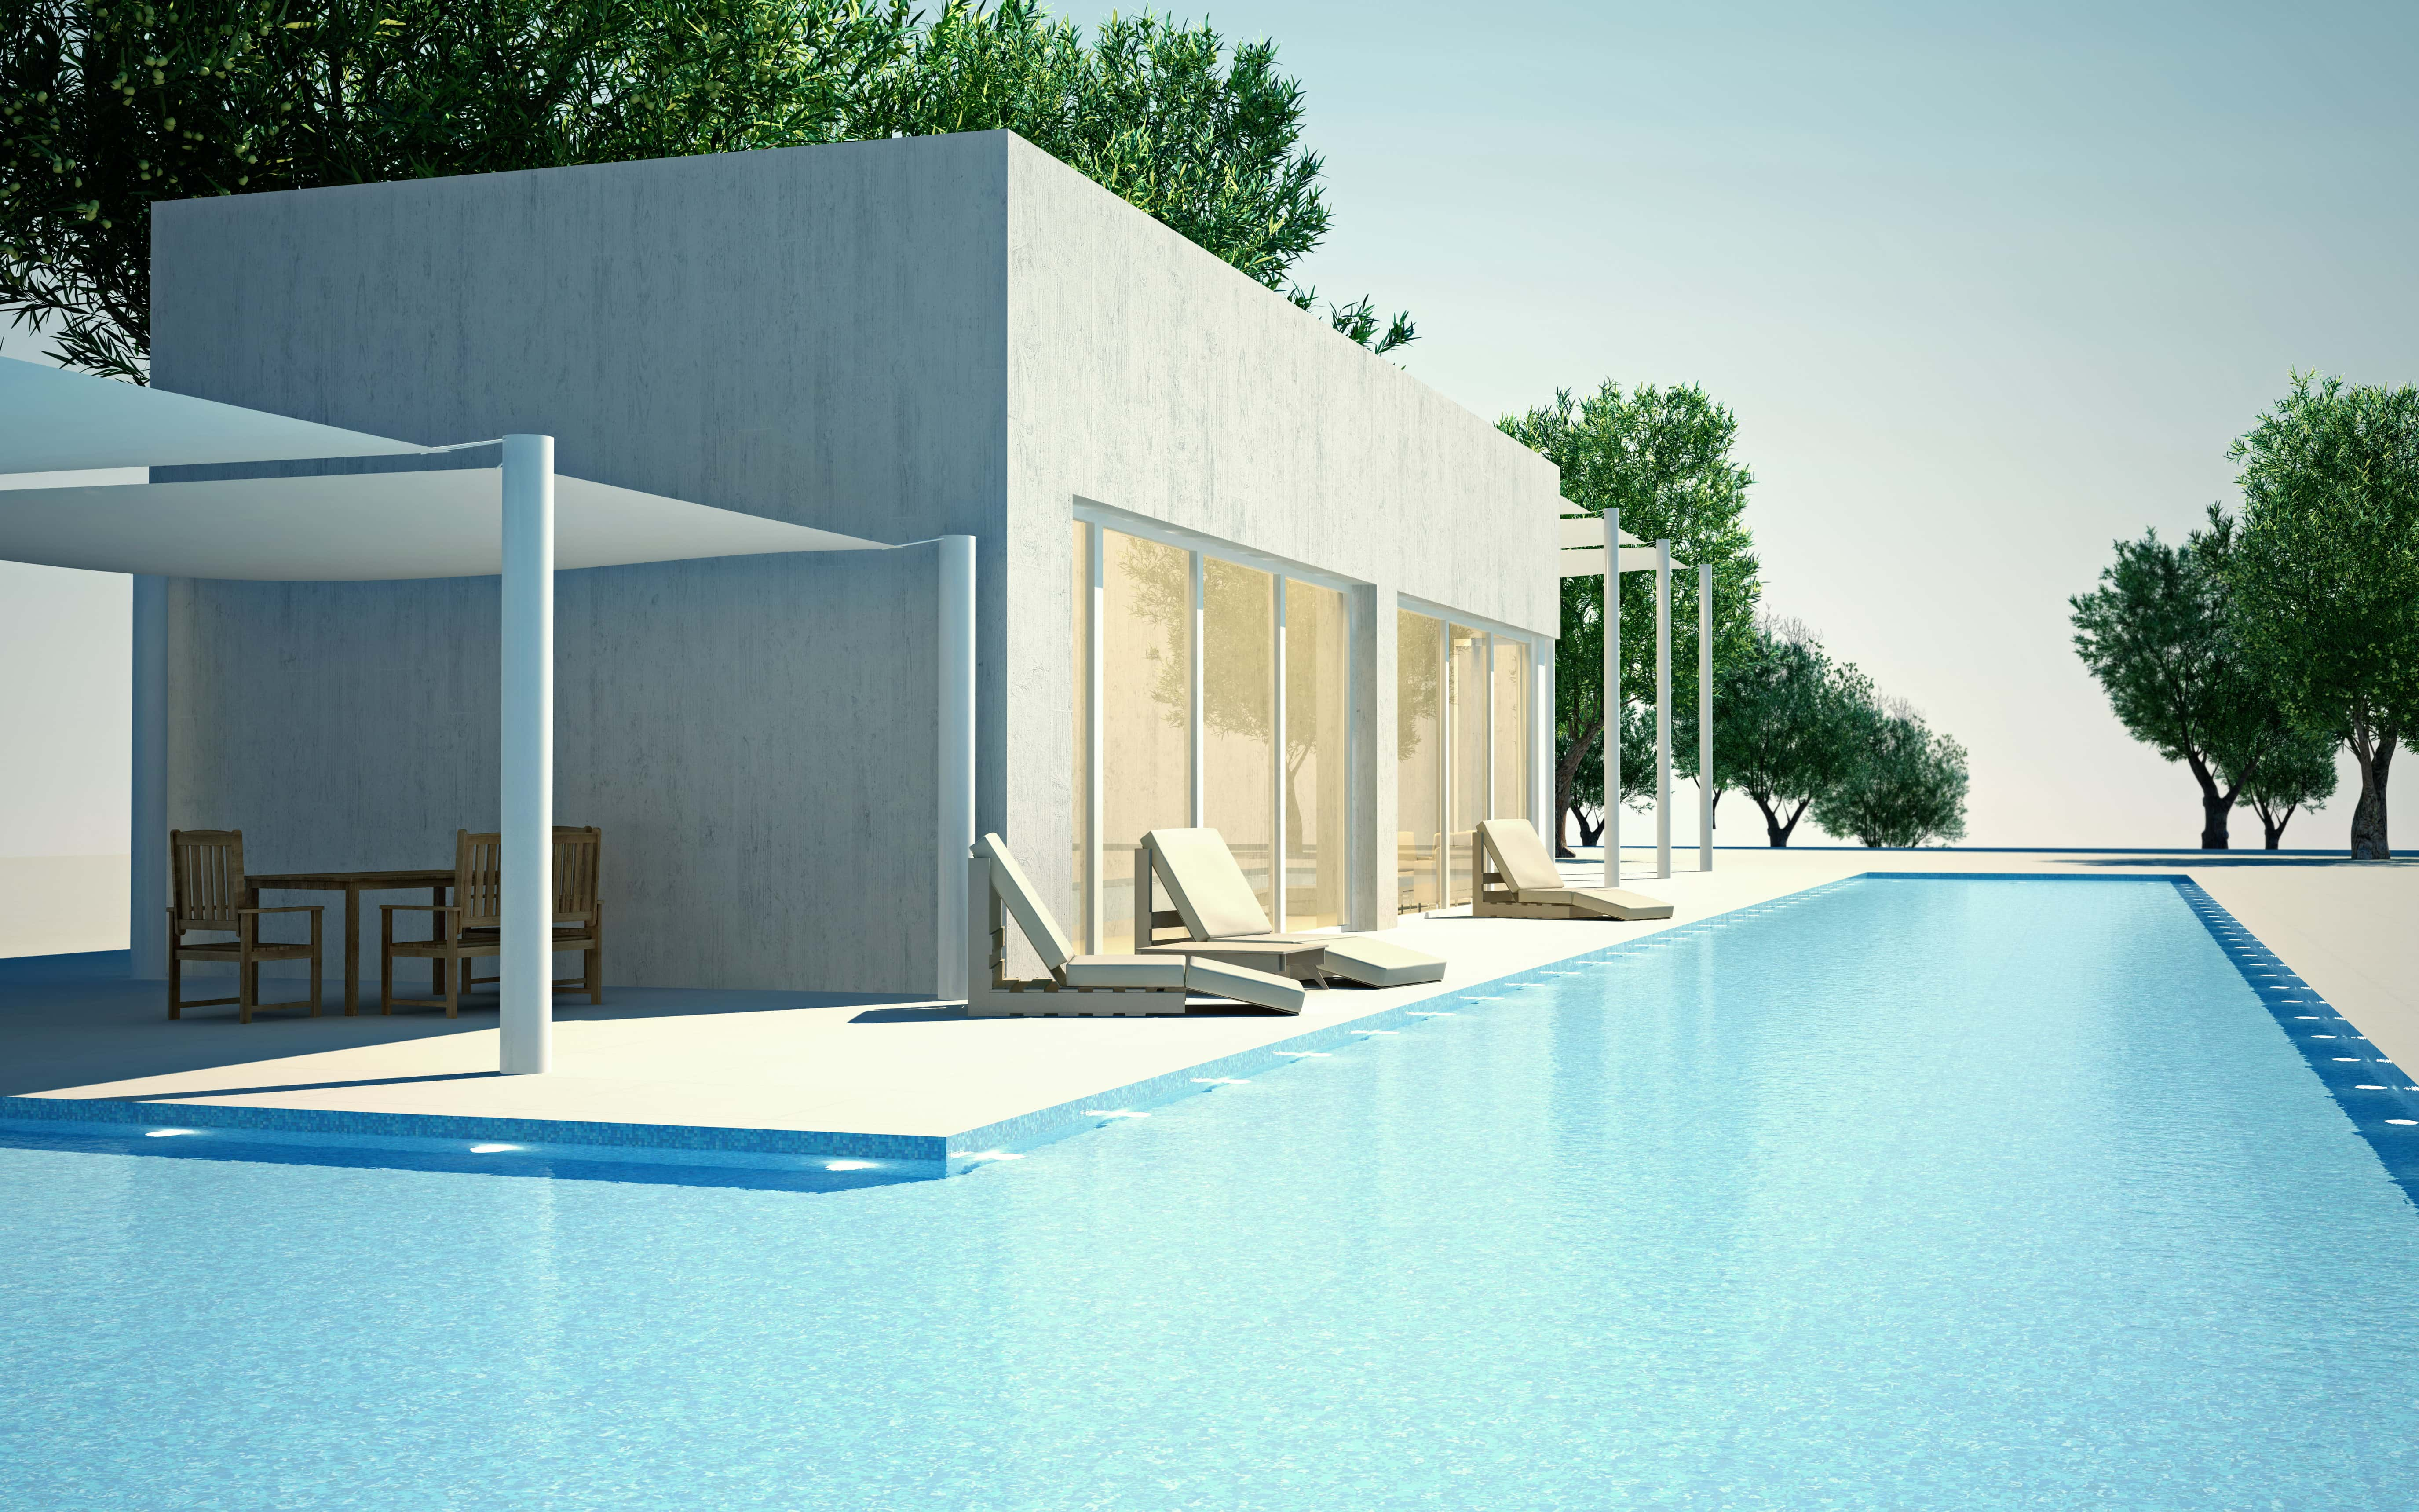 House With Pool 6qvcztd